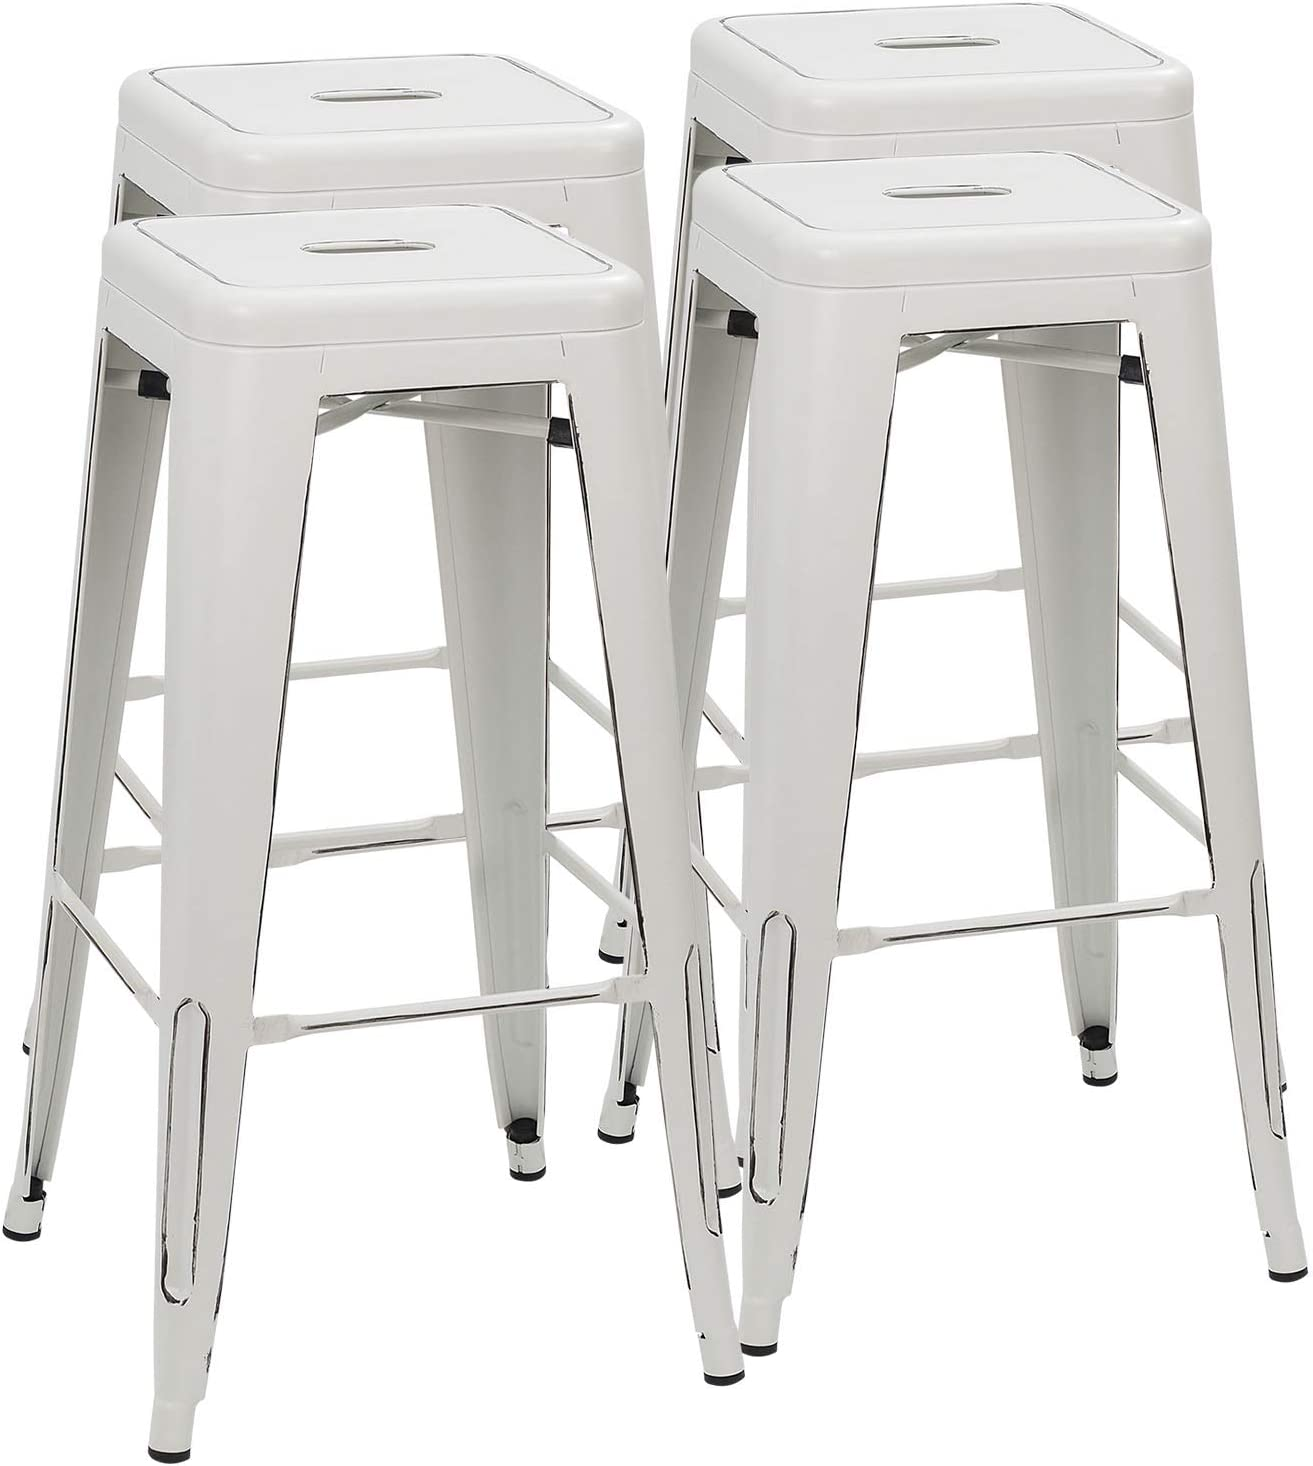 Furmax 30 Inches Metal Bar Stools High Backless Stools Indoor-Outdoor Stackable Stools Set of 4 Distressed White